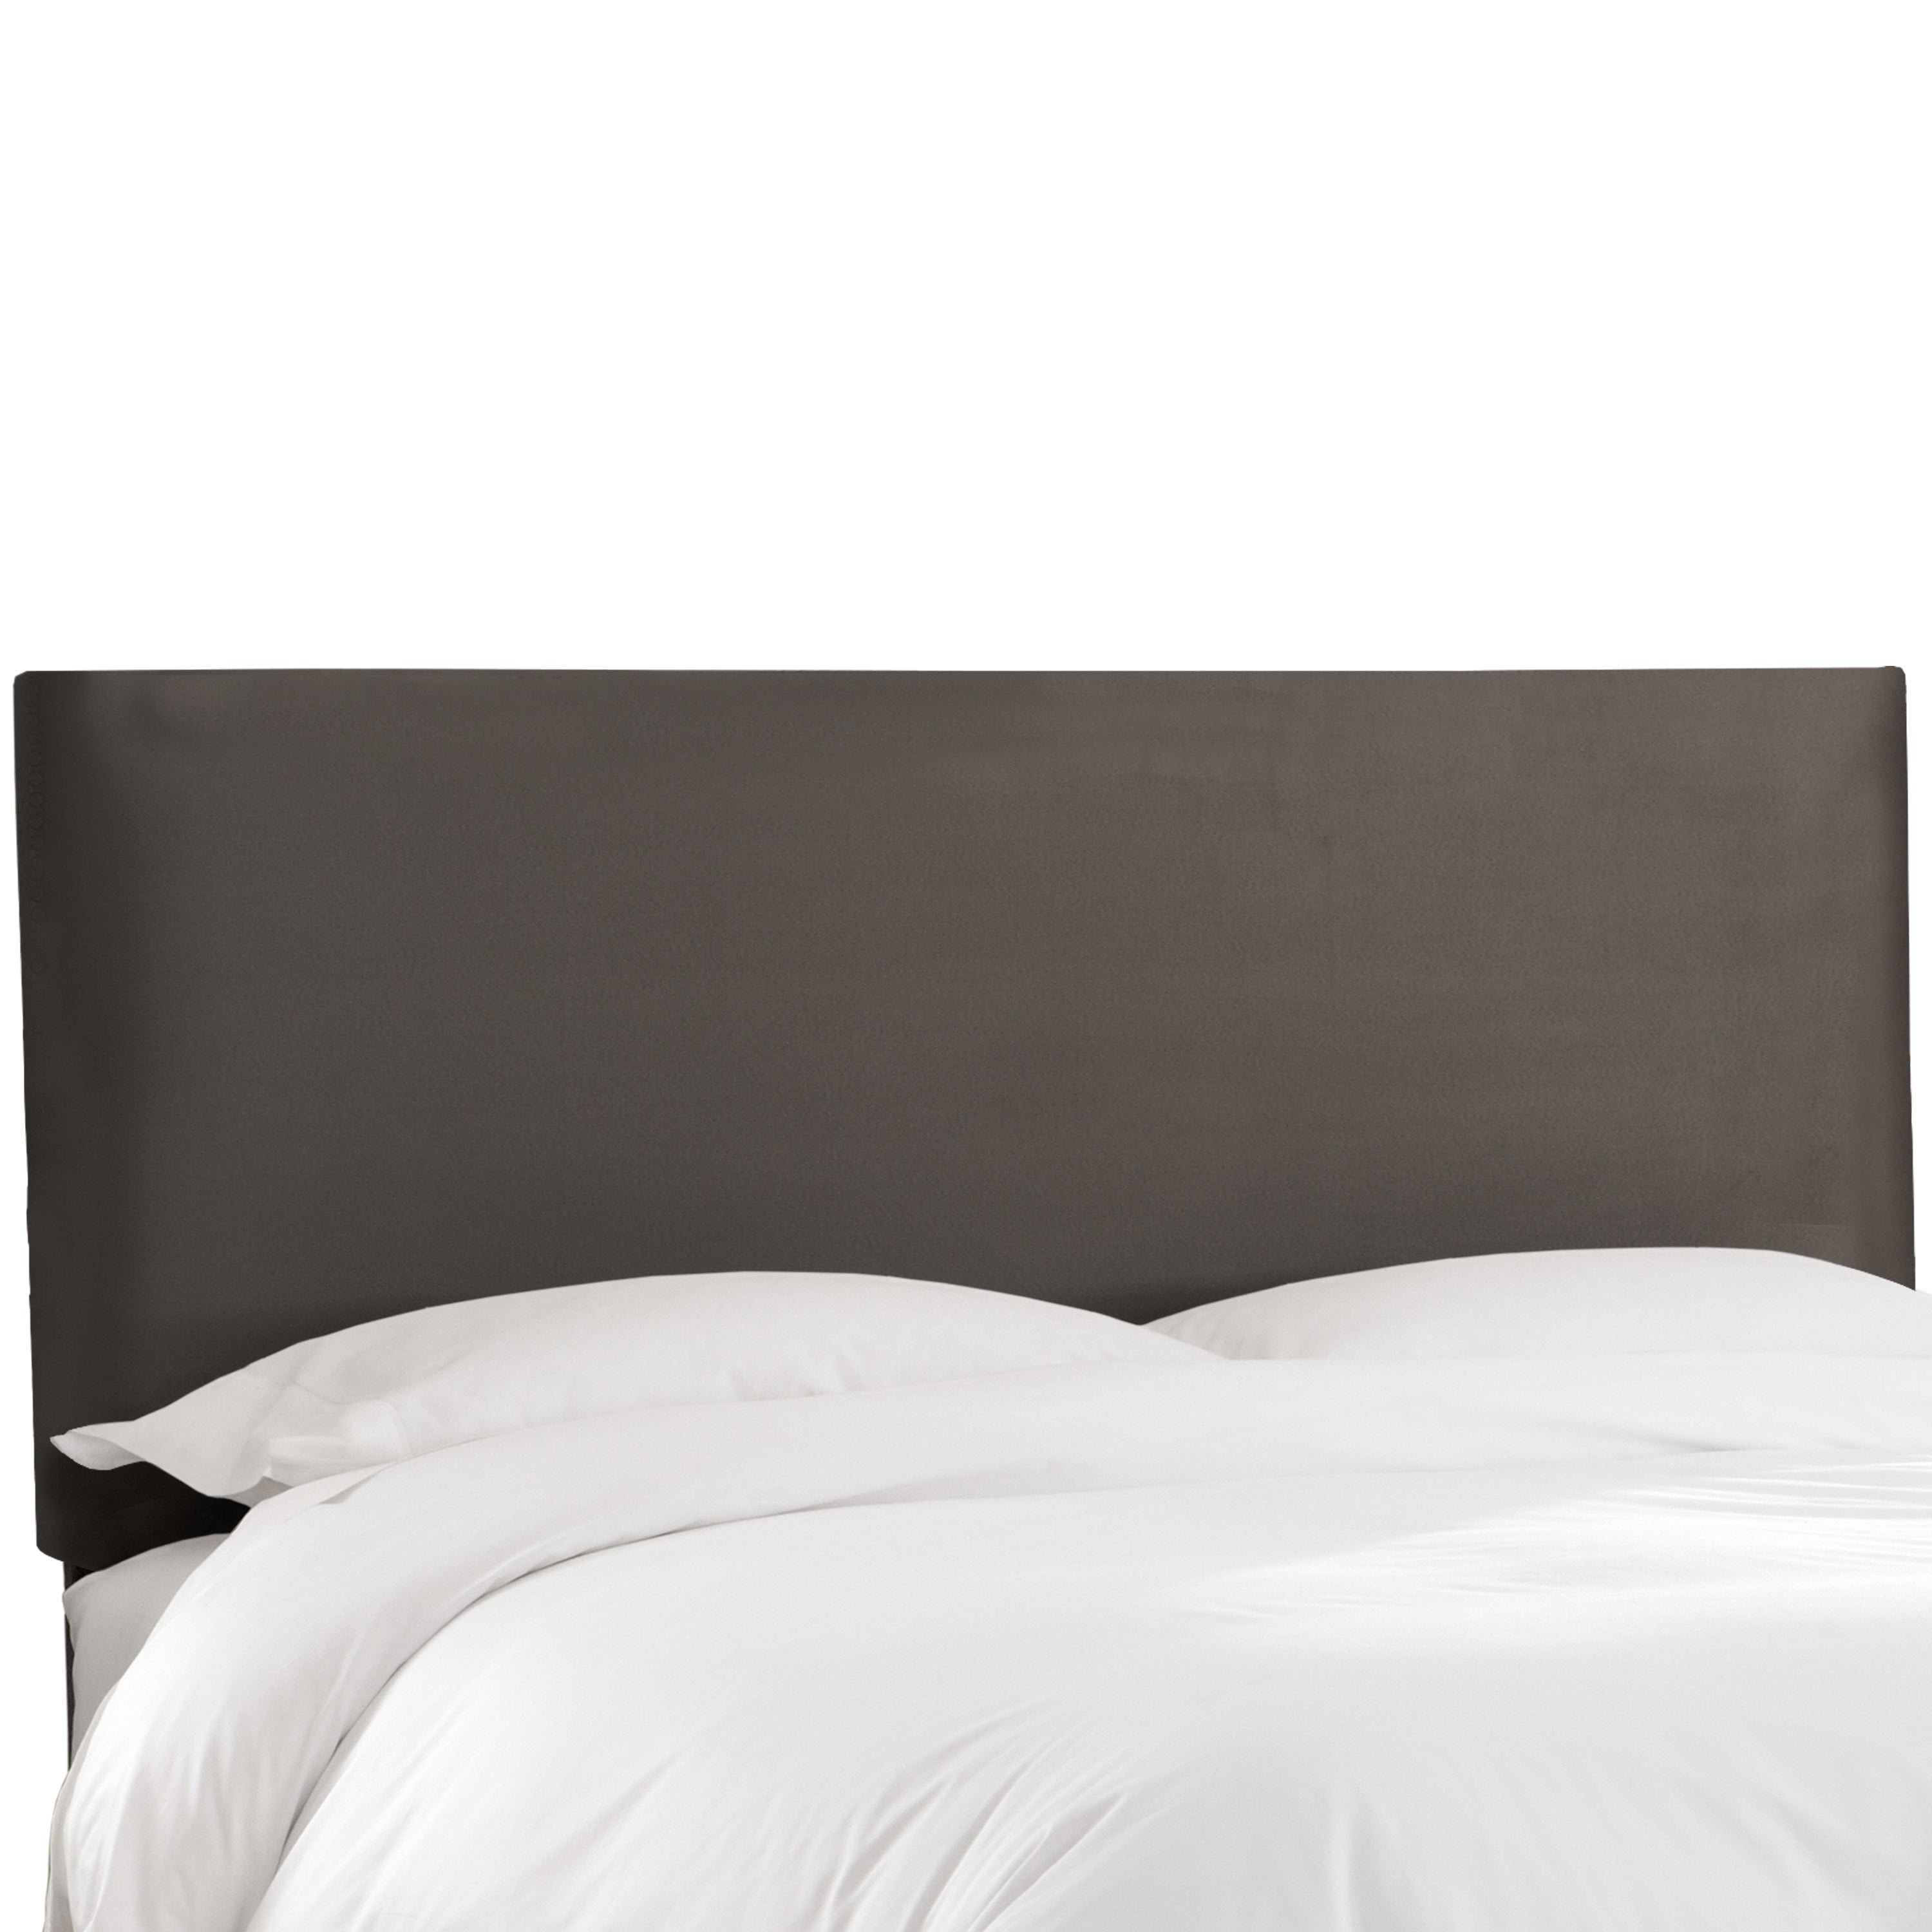 Shop skyline furniture premier charcoal upholstered headboard on sale free shipping today overstock com 12520667